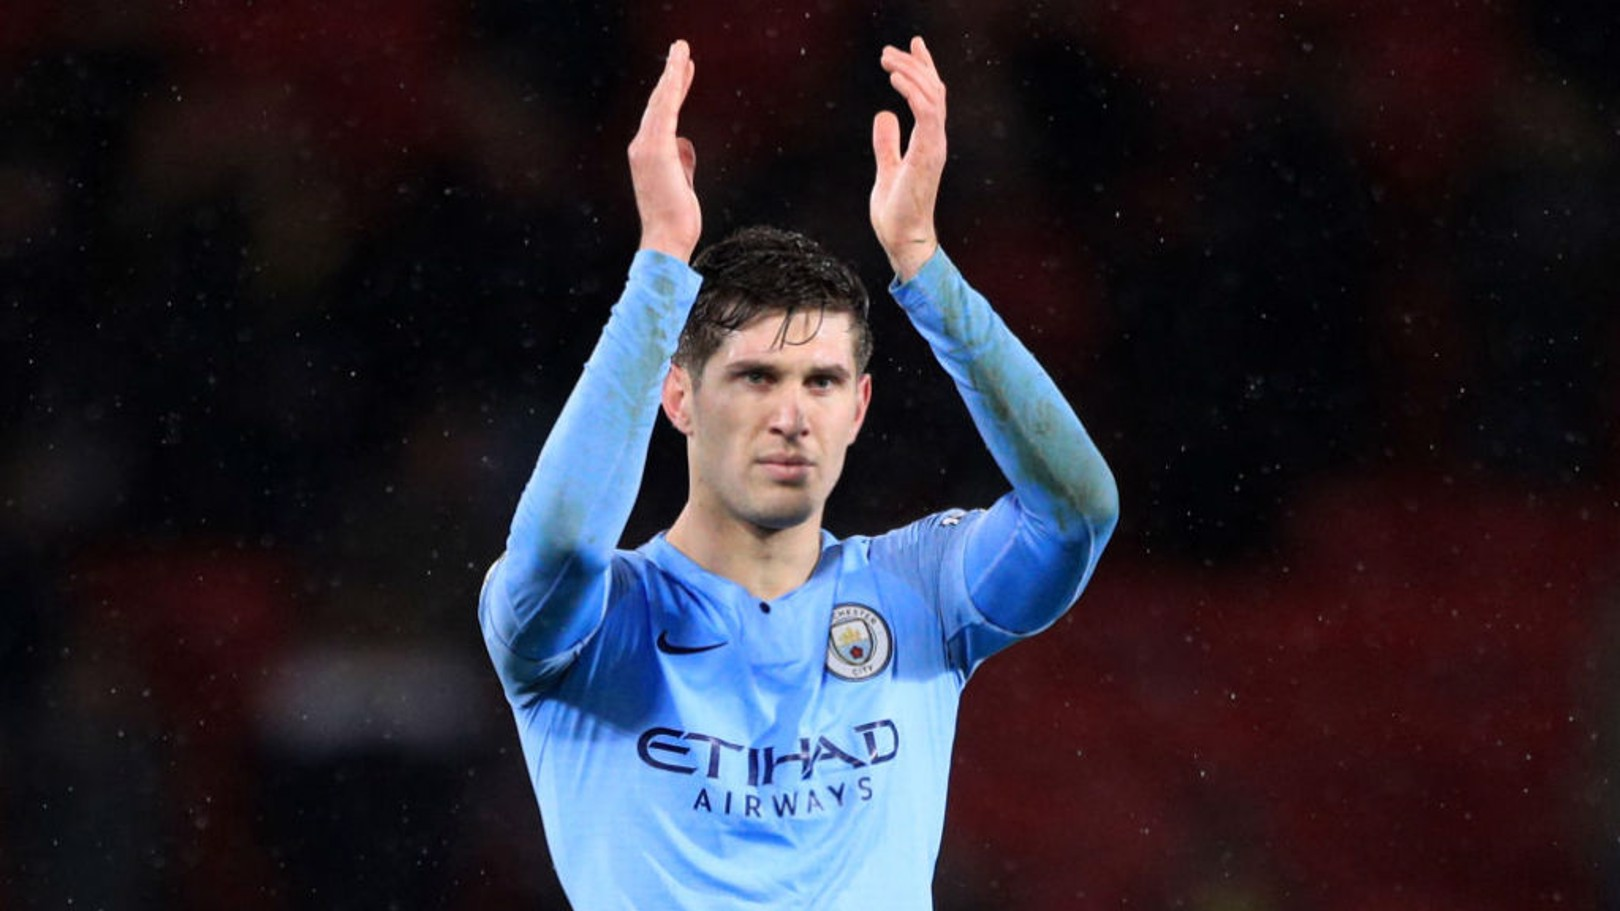 PROUD: Stones is delighted with City's season to date